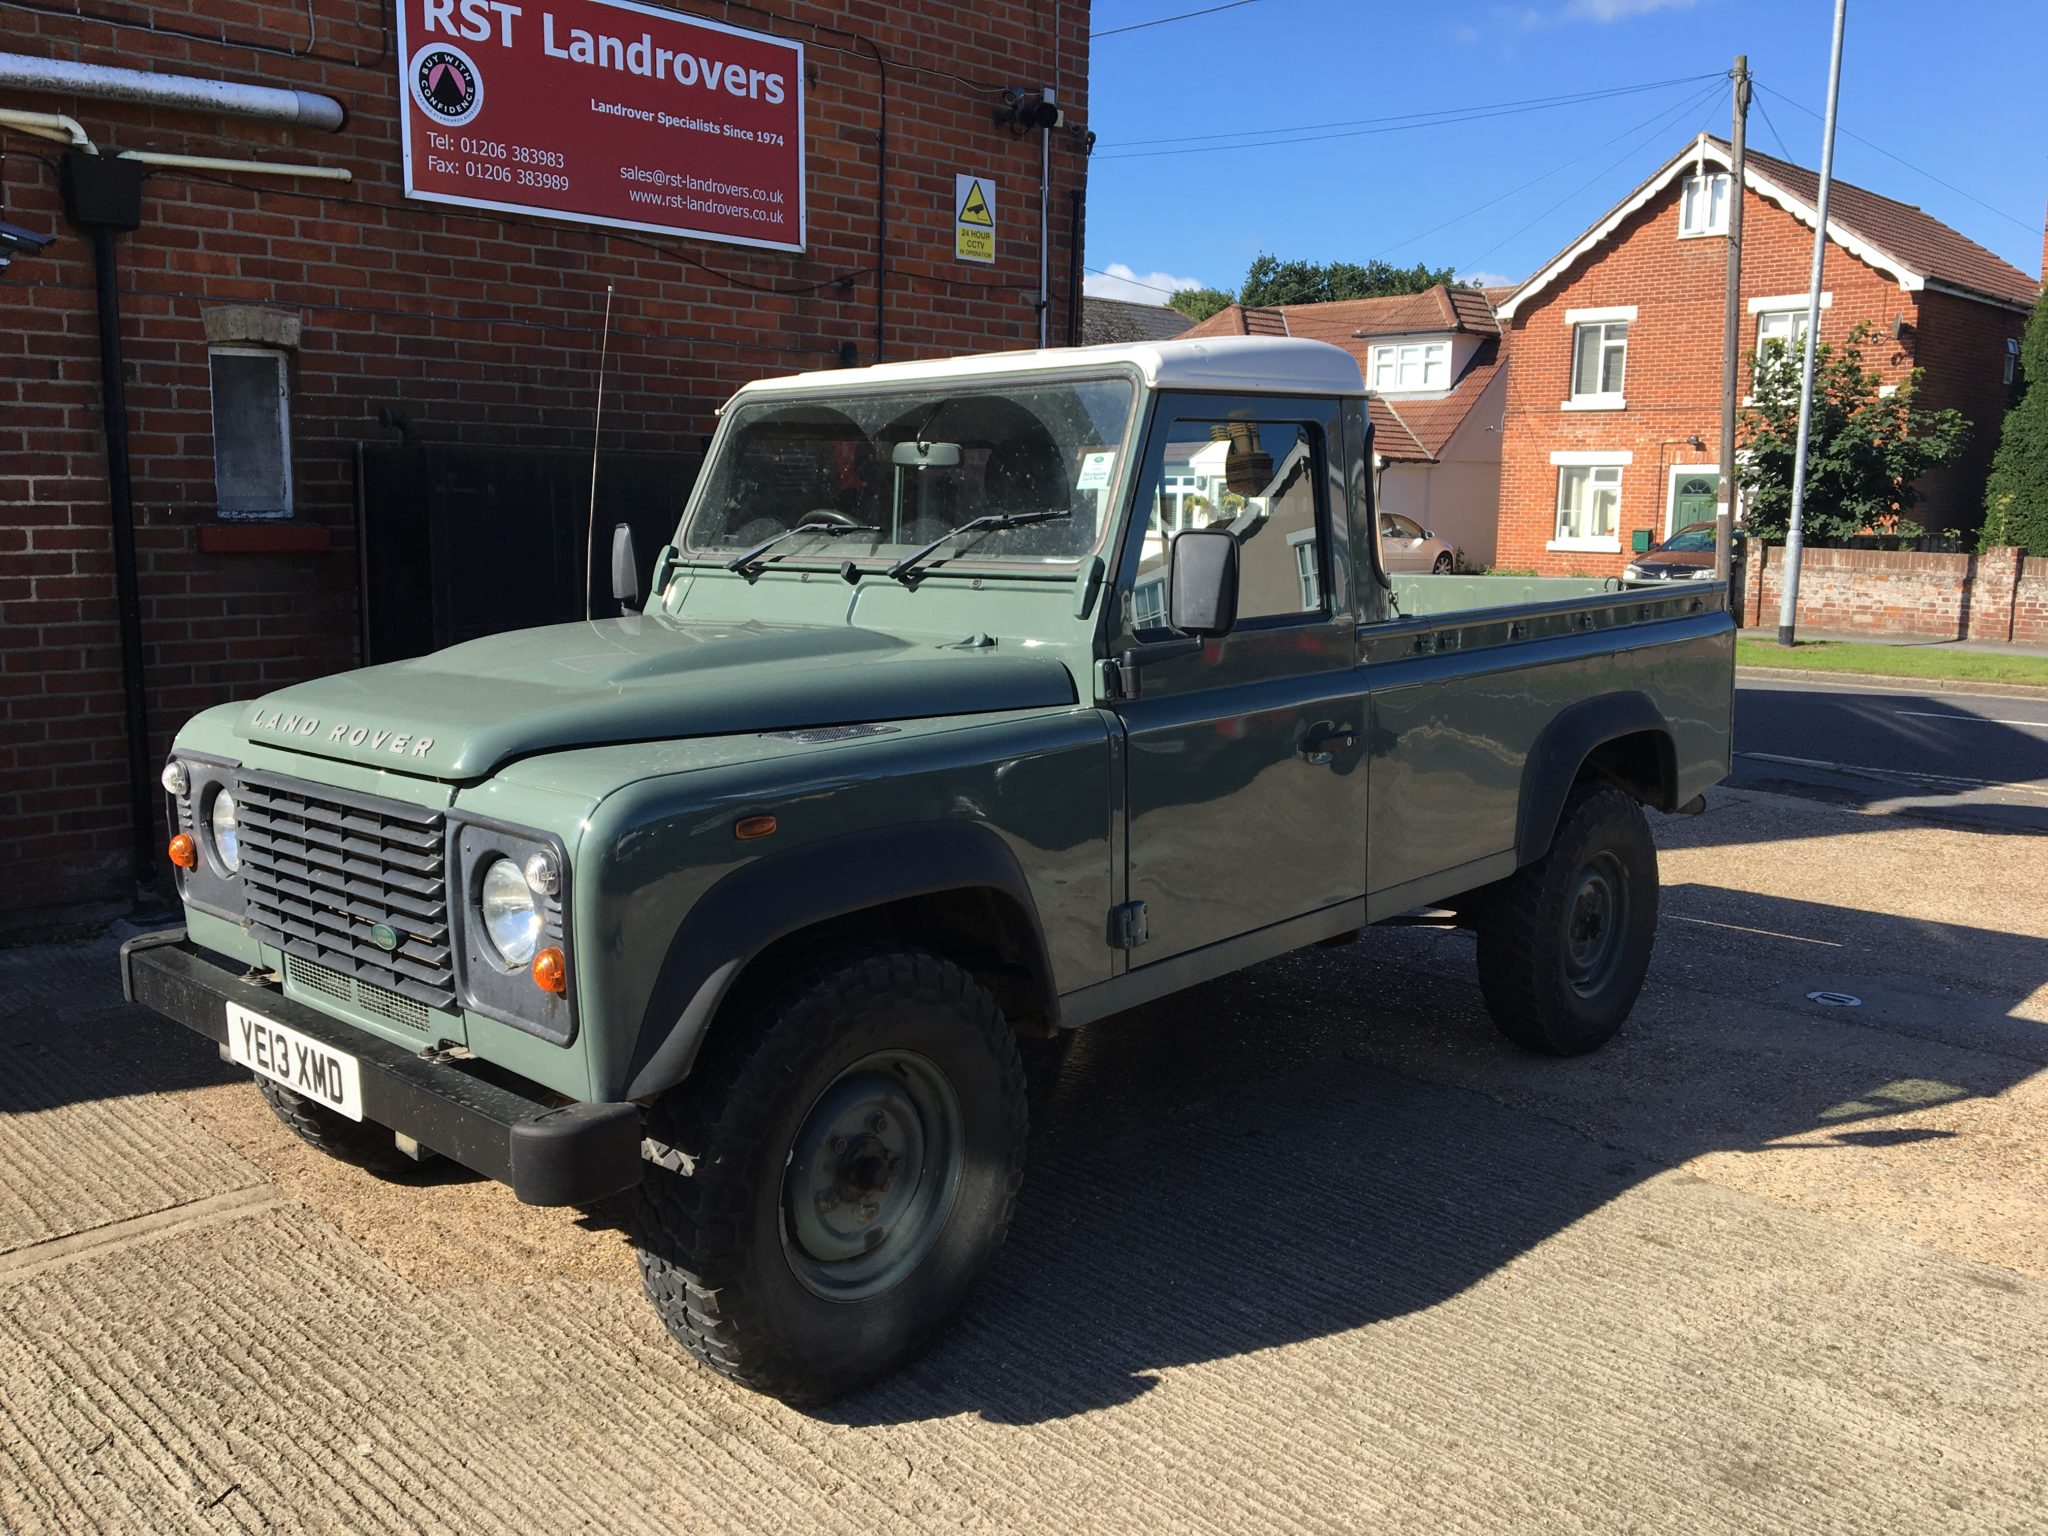 blue landrover rhfunrovercom marine for sale defender blog tribute is rover land rhpinterestcom perfect funrover vintage simply